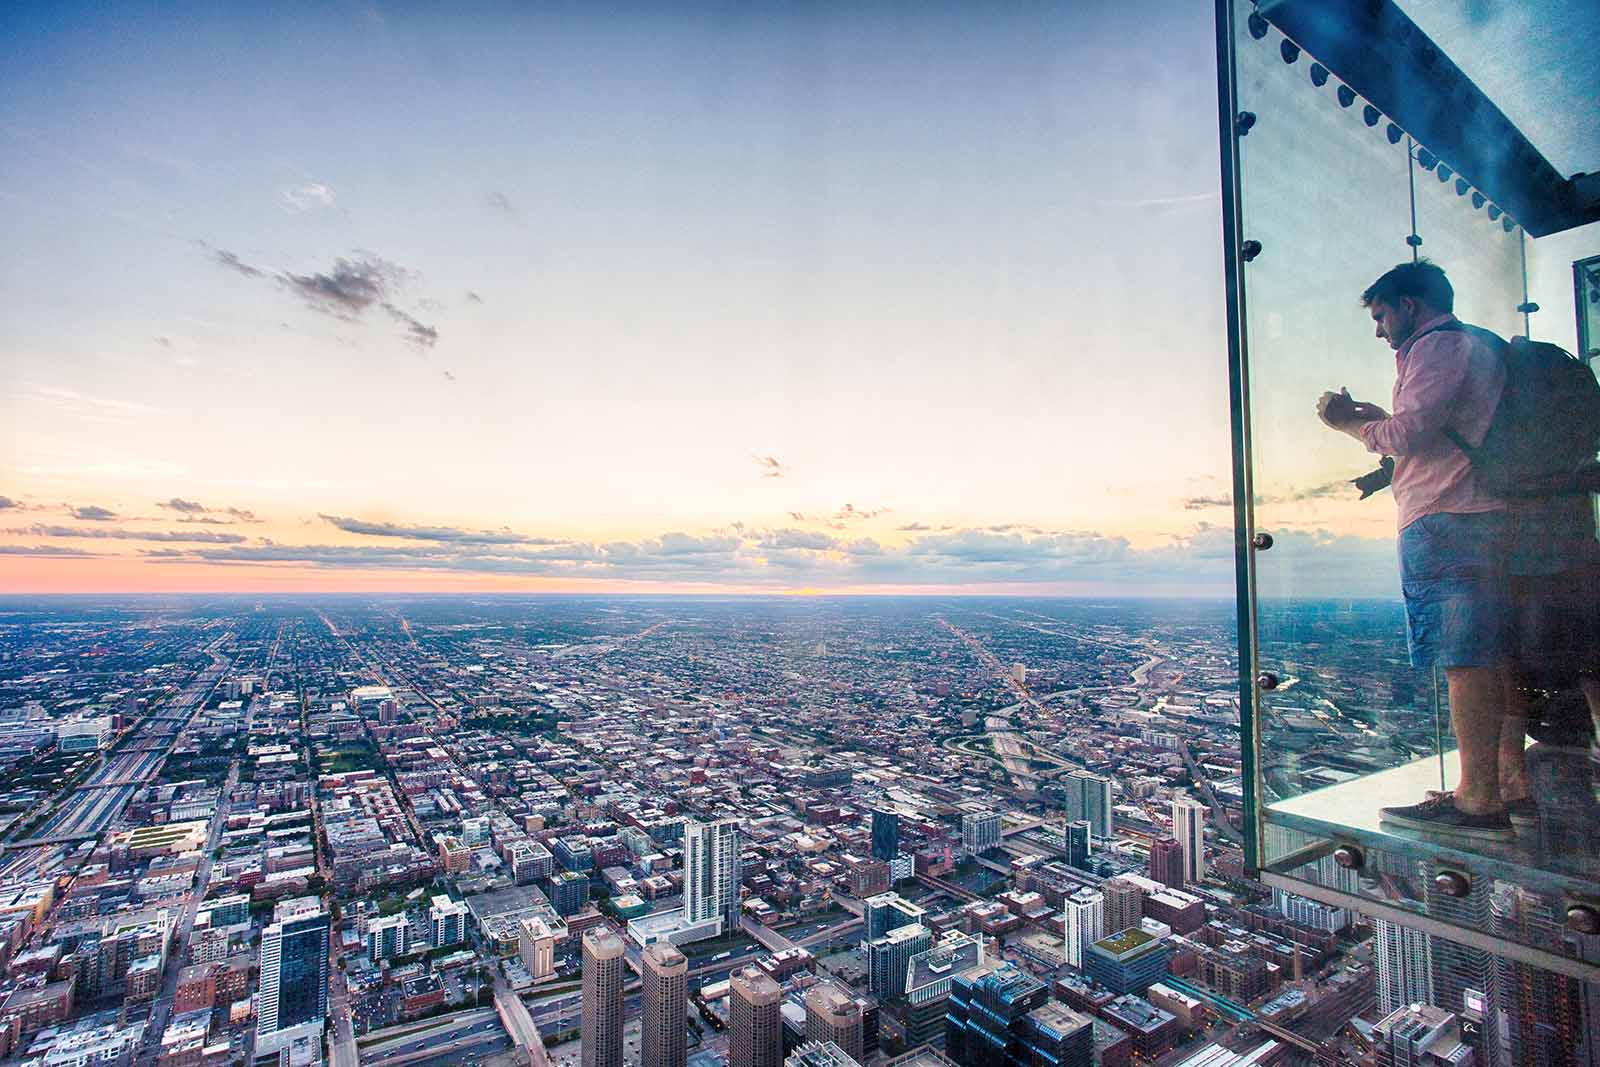 If you're brave, step out on The Ledge of Willis Tower, Chicago | First time to Chicago? 11 spots you can't miss